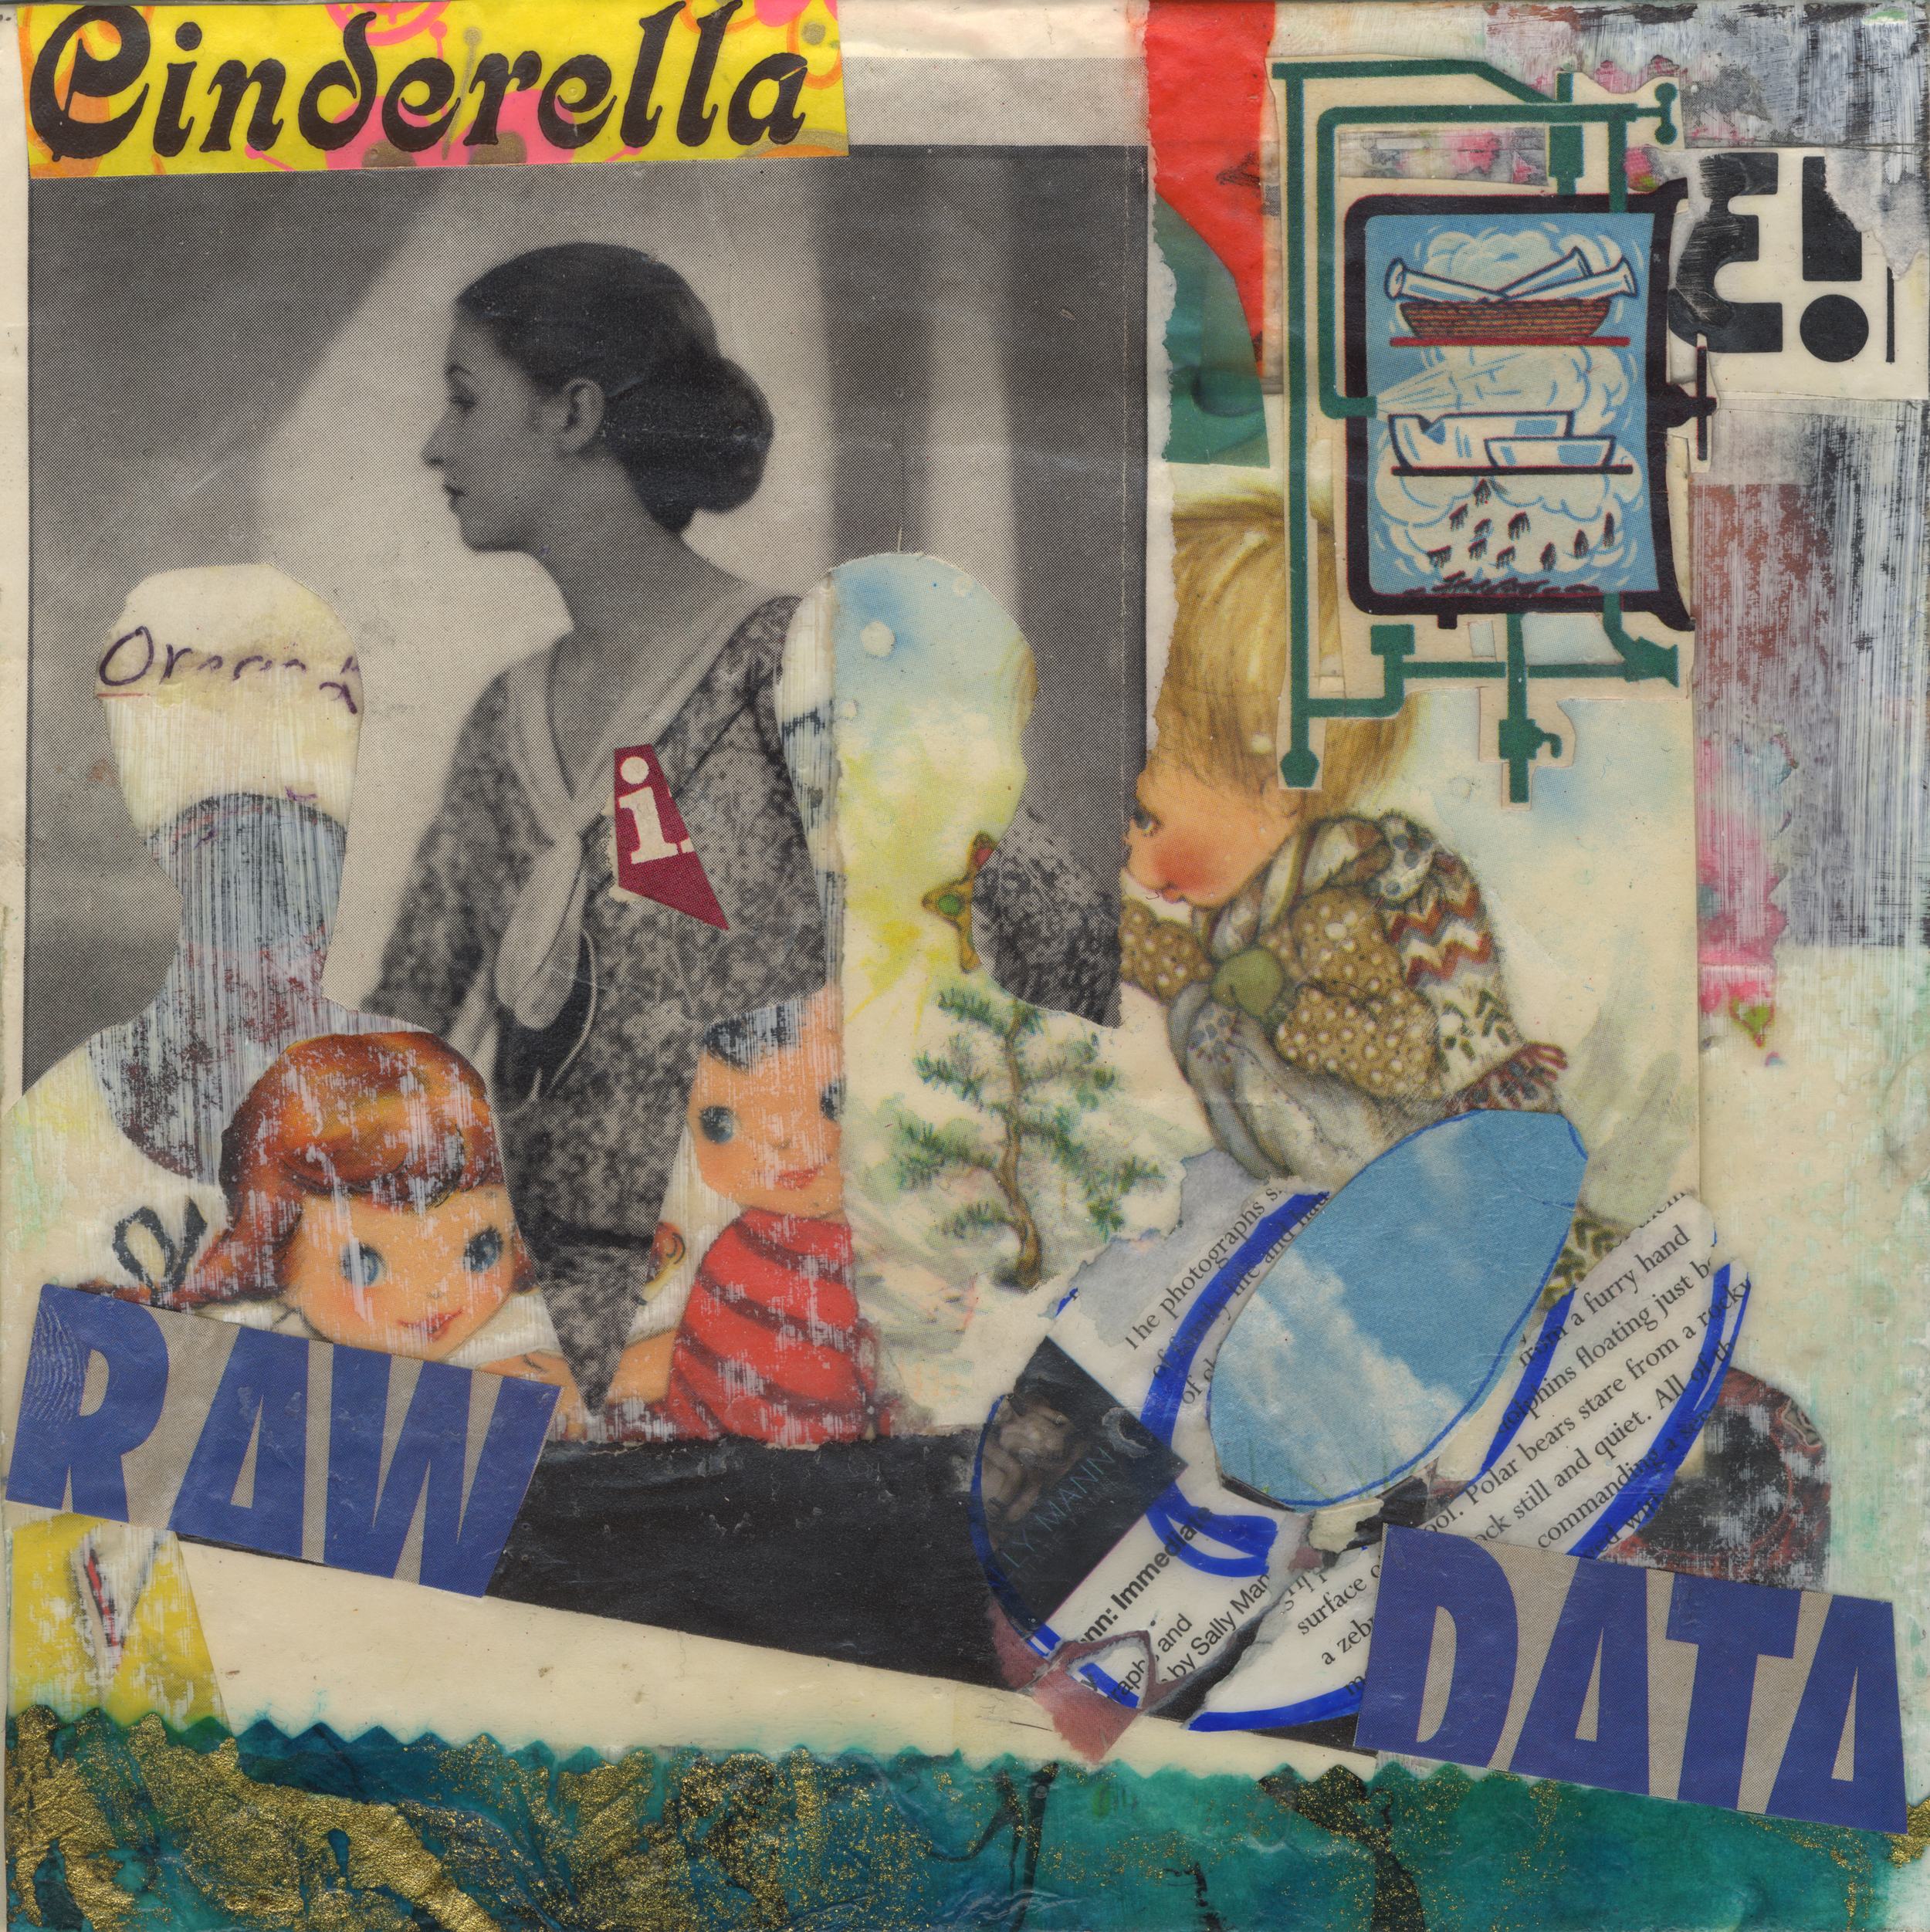 Cinderella. Mixed media collage on 300 lb. cold-pressed 100% rag paper with original vintage ephemera. 7 x 7 inches. 2014.